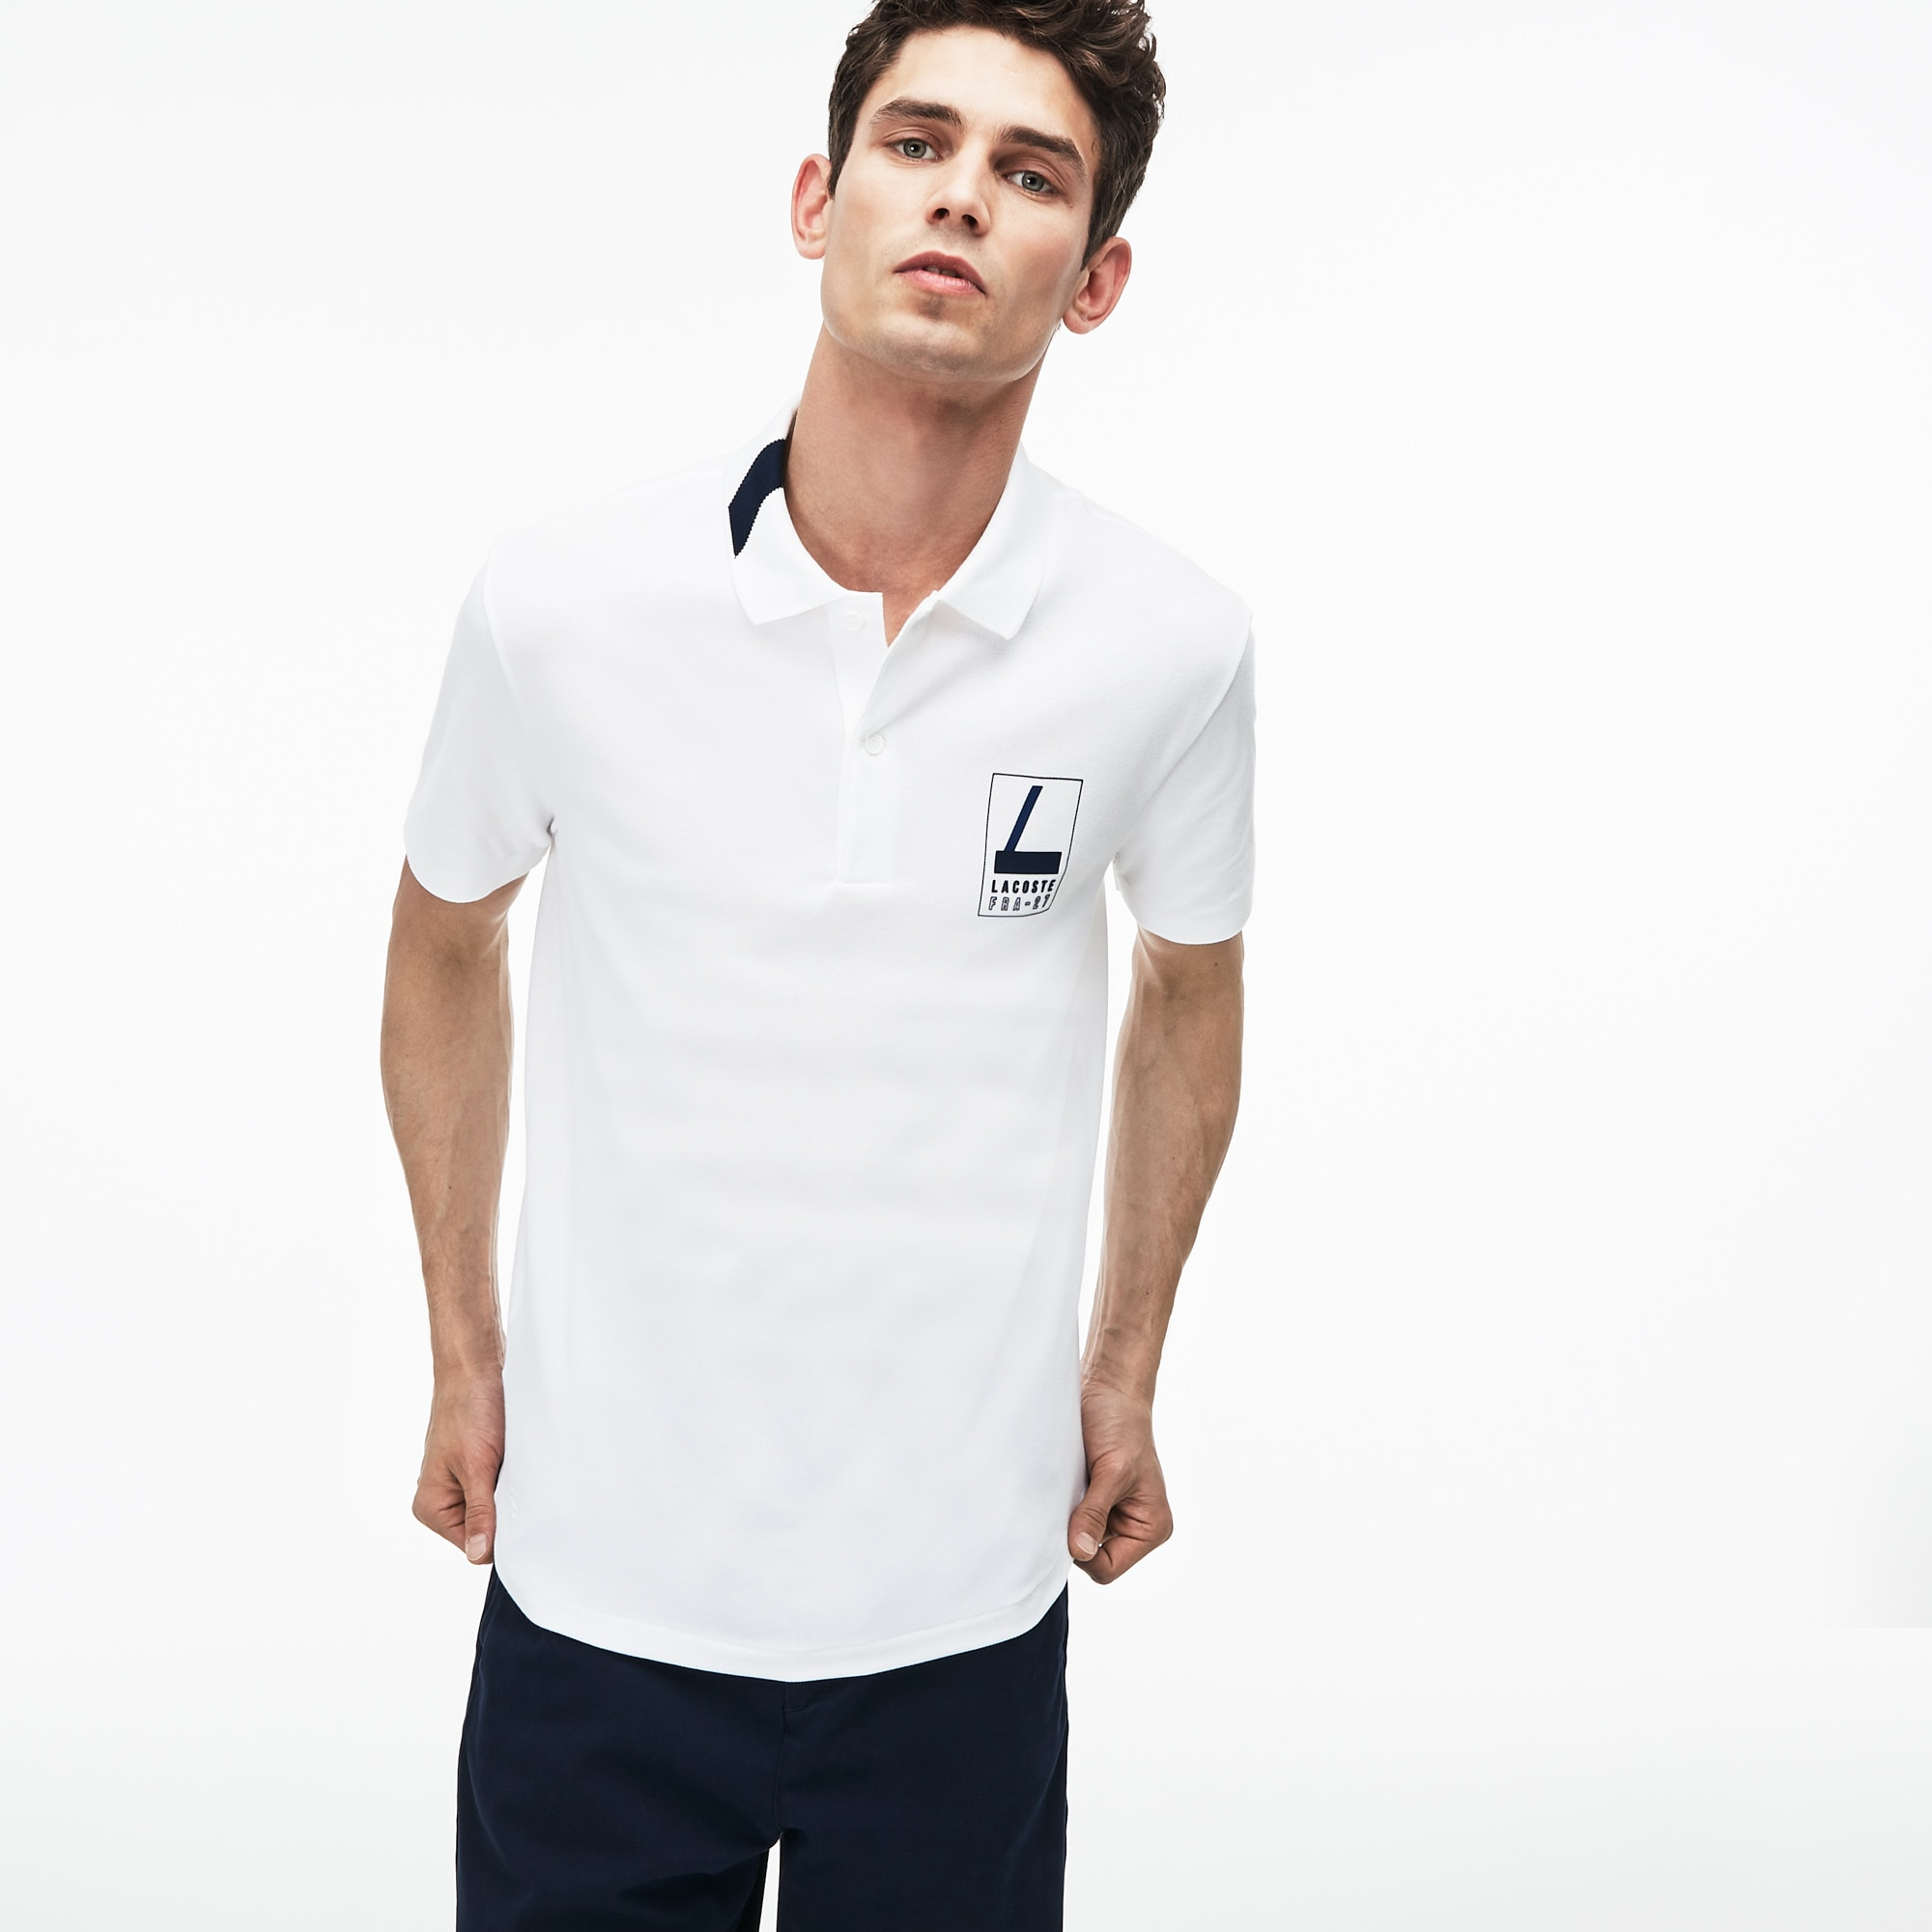 336282bc0 + 1 cor · Polo masculina Slim Fit ...